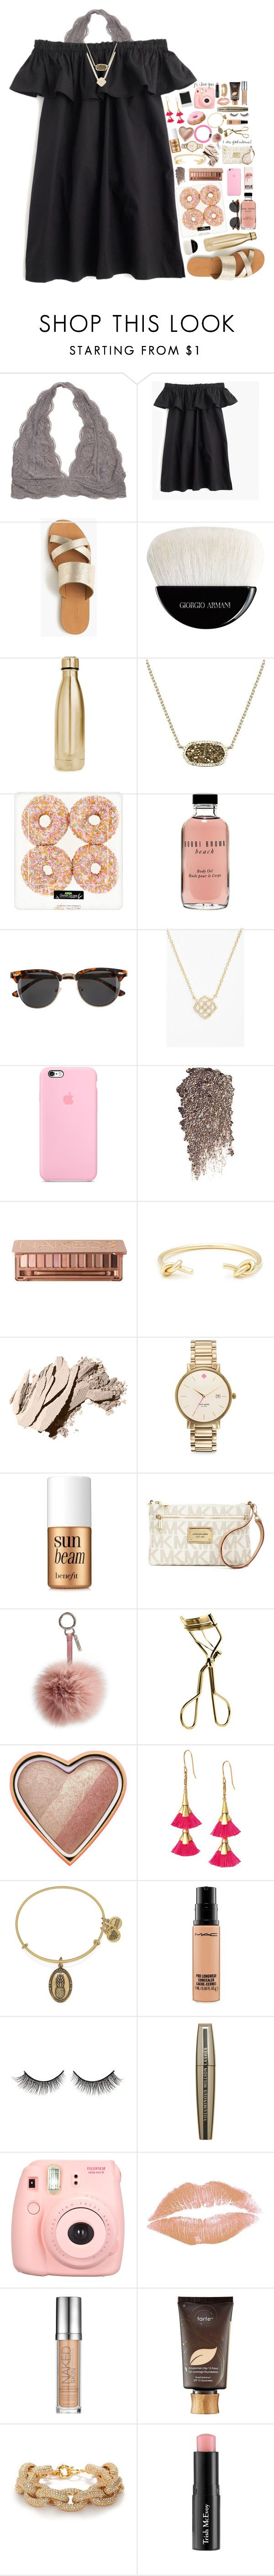 """""""take me to paris"""" by kate-elizabethh ❤ liked on Polyvore featuring J.Crew, Giorgio Armani, S'well, Kendra Scott, Bobbi Brown Cosmetics, H&M, Urban Decay, Sole Society, Kate Spade and Benefit"""